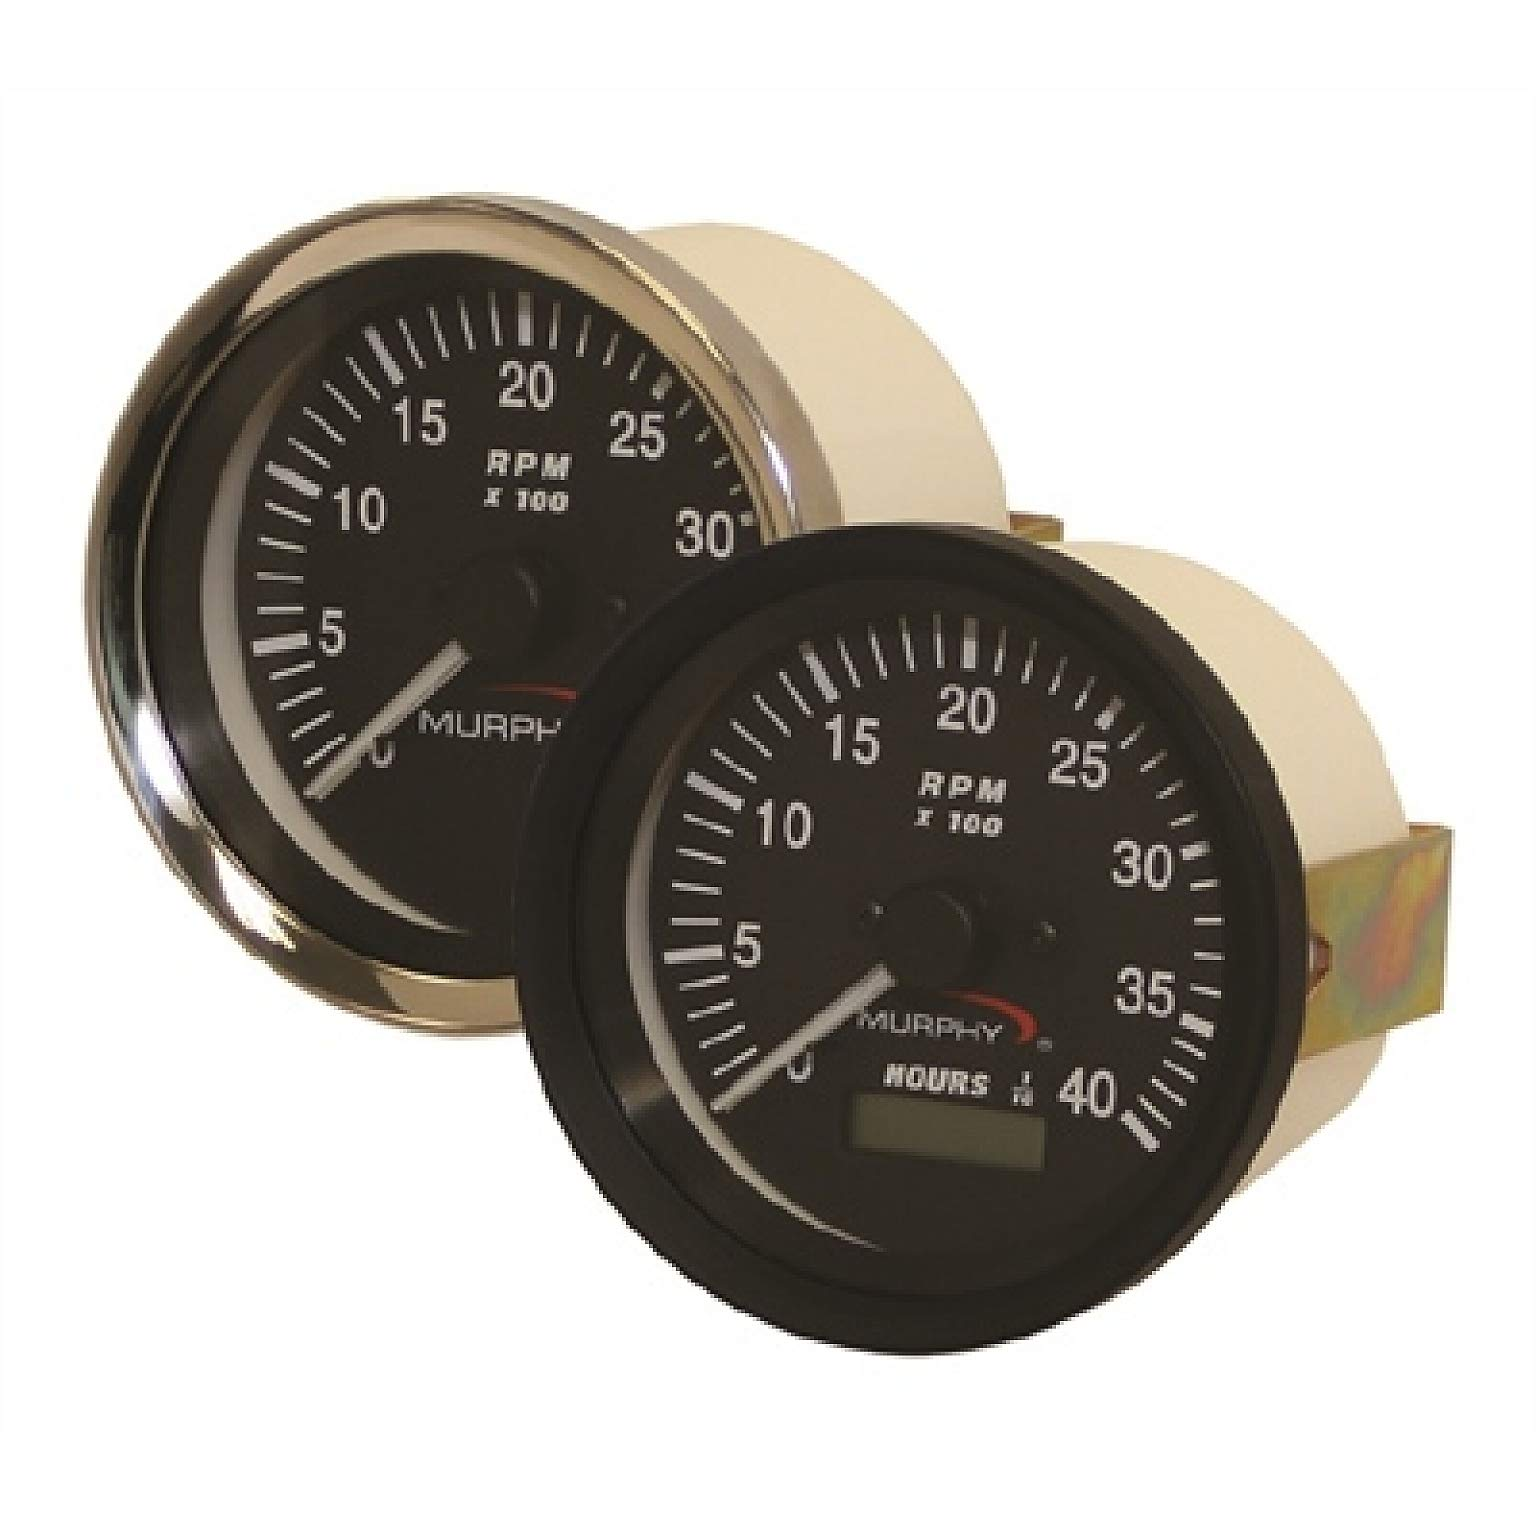 MURPHY-FRANK W.MFG Tachometers and Tach/Hourmeters - AT and ATH Series - TACH/HOUR FLYWHEEL 12V - ATHS-30 Tachometer/Hourmeter (20700249)